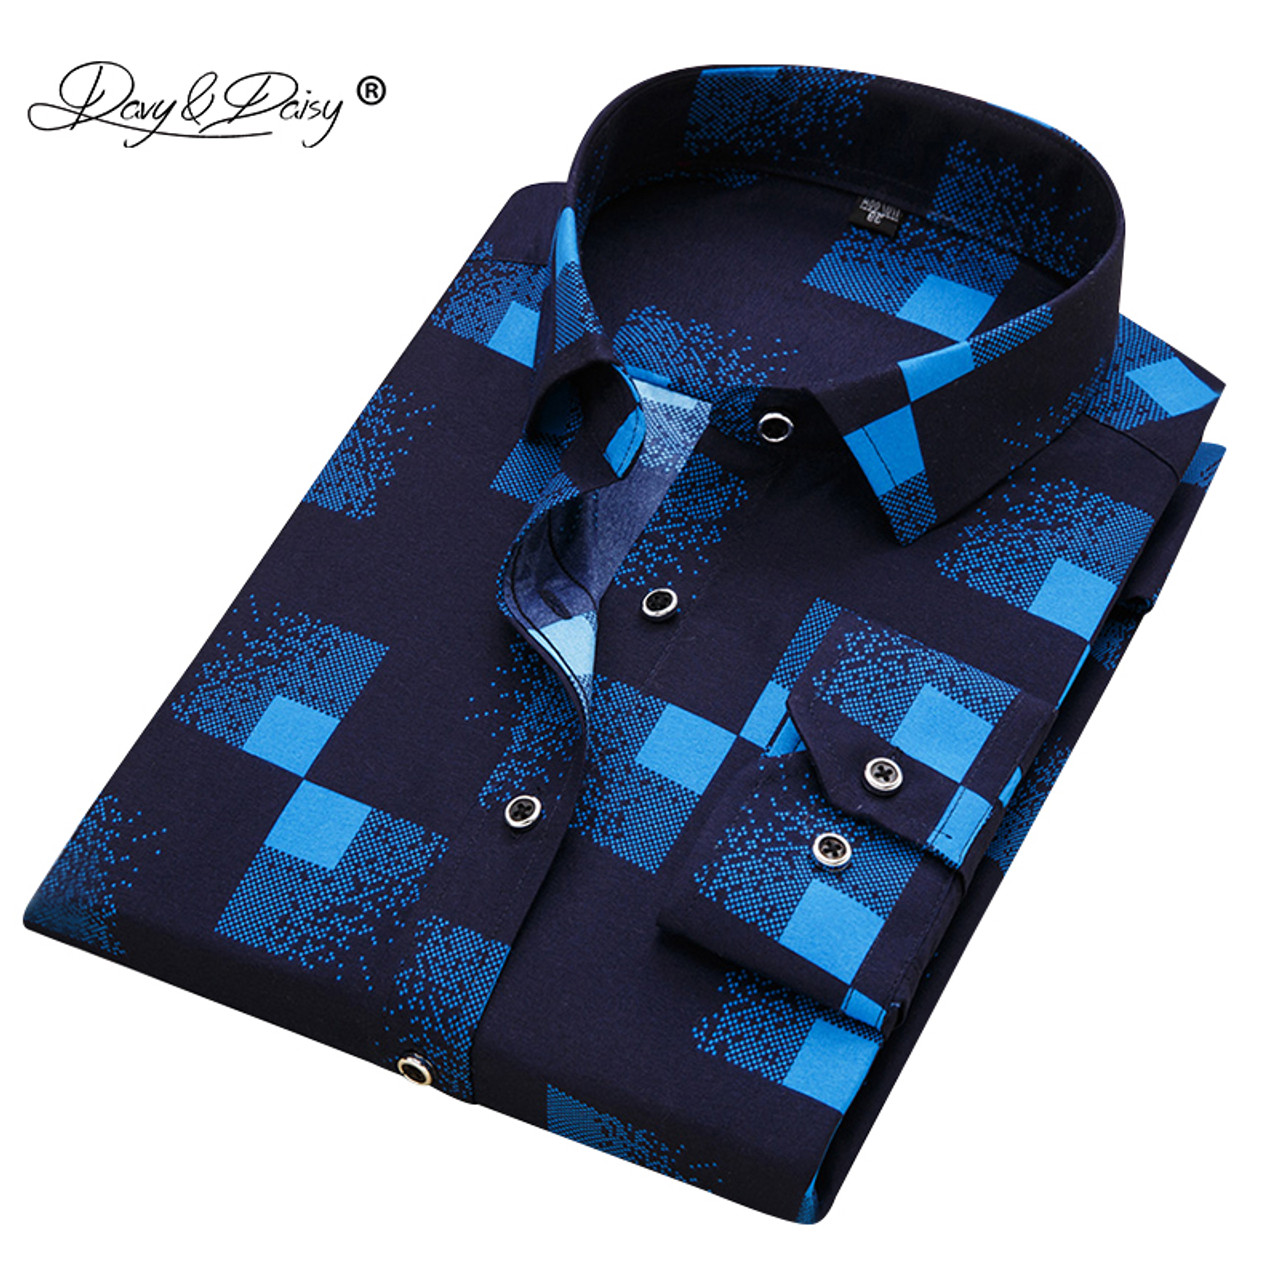 d51dfc8093f DAVYDAISY 2018 New Arrival 100% Polyester Men s Shirt Fashion Men Print Long  Sleeved Shirt Male ...